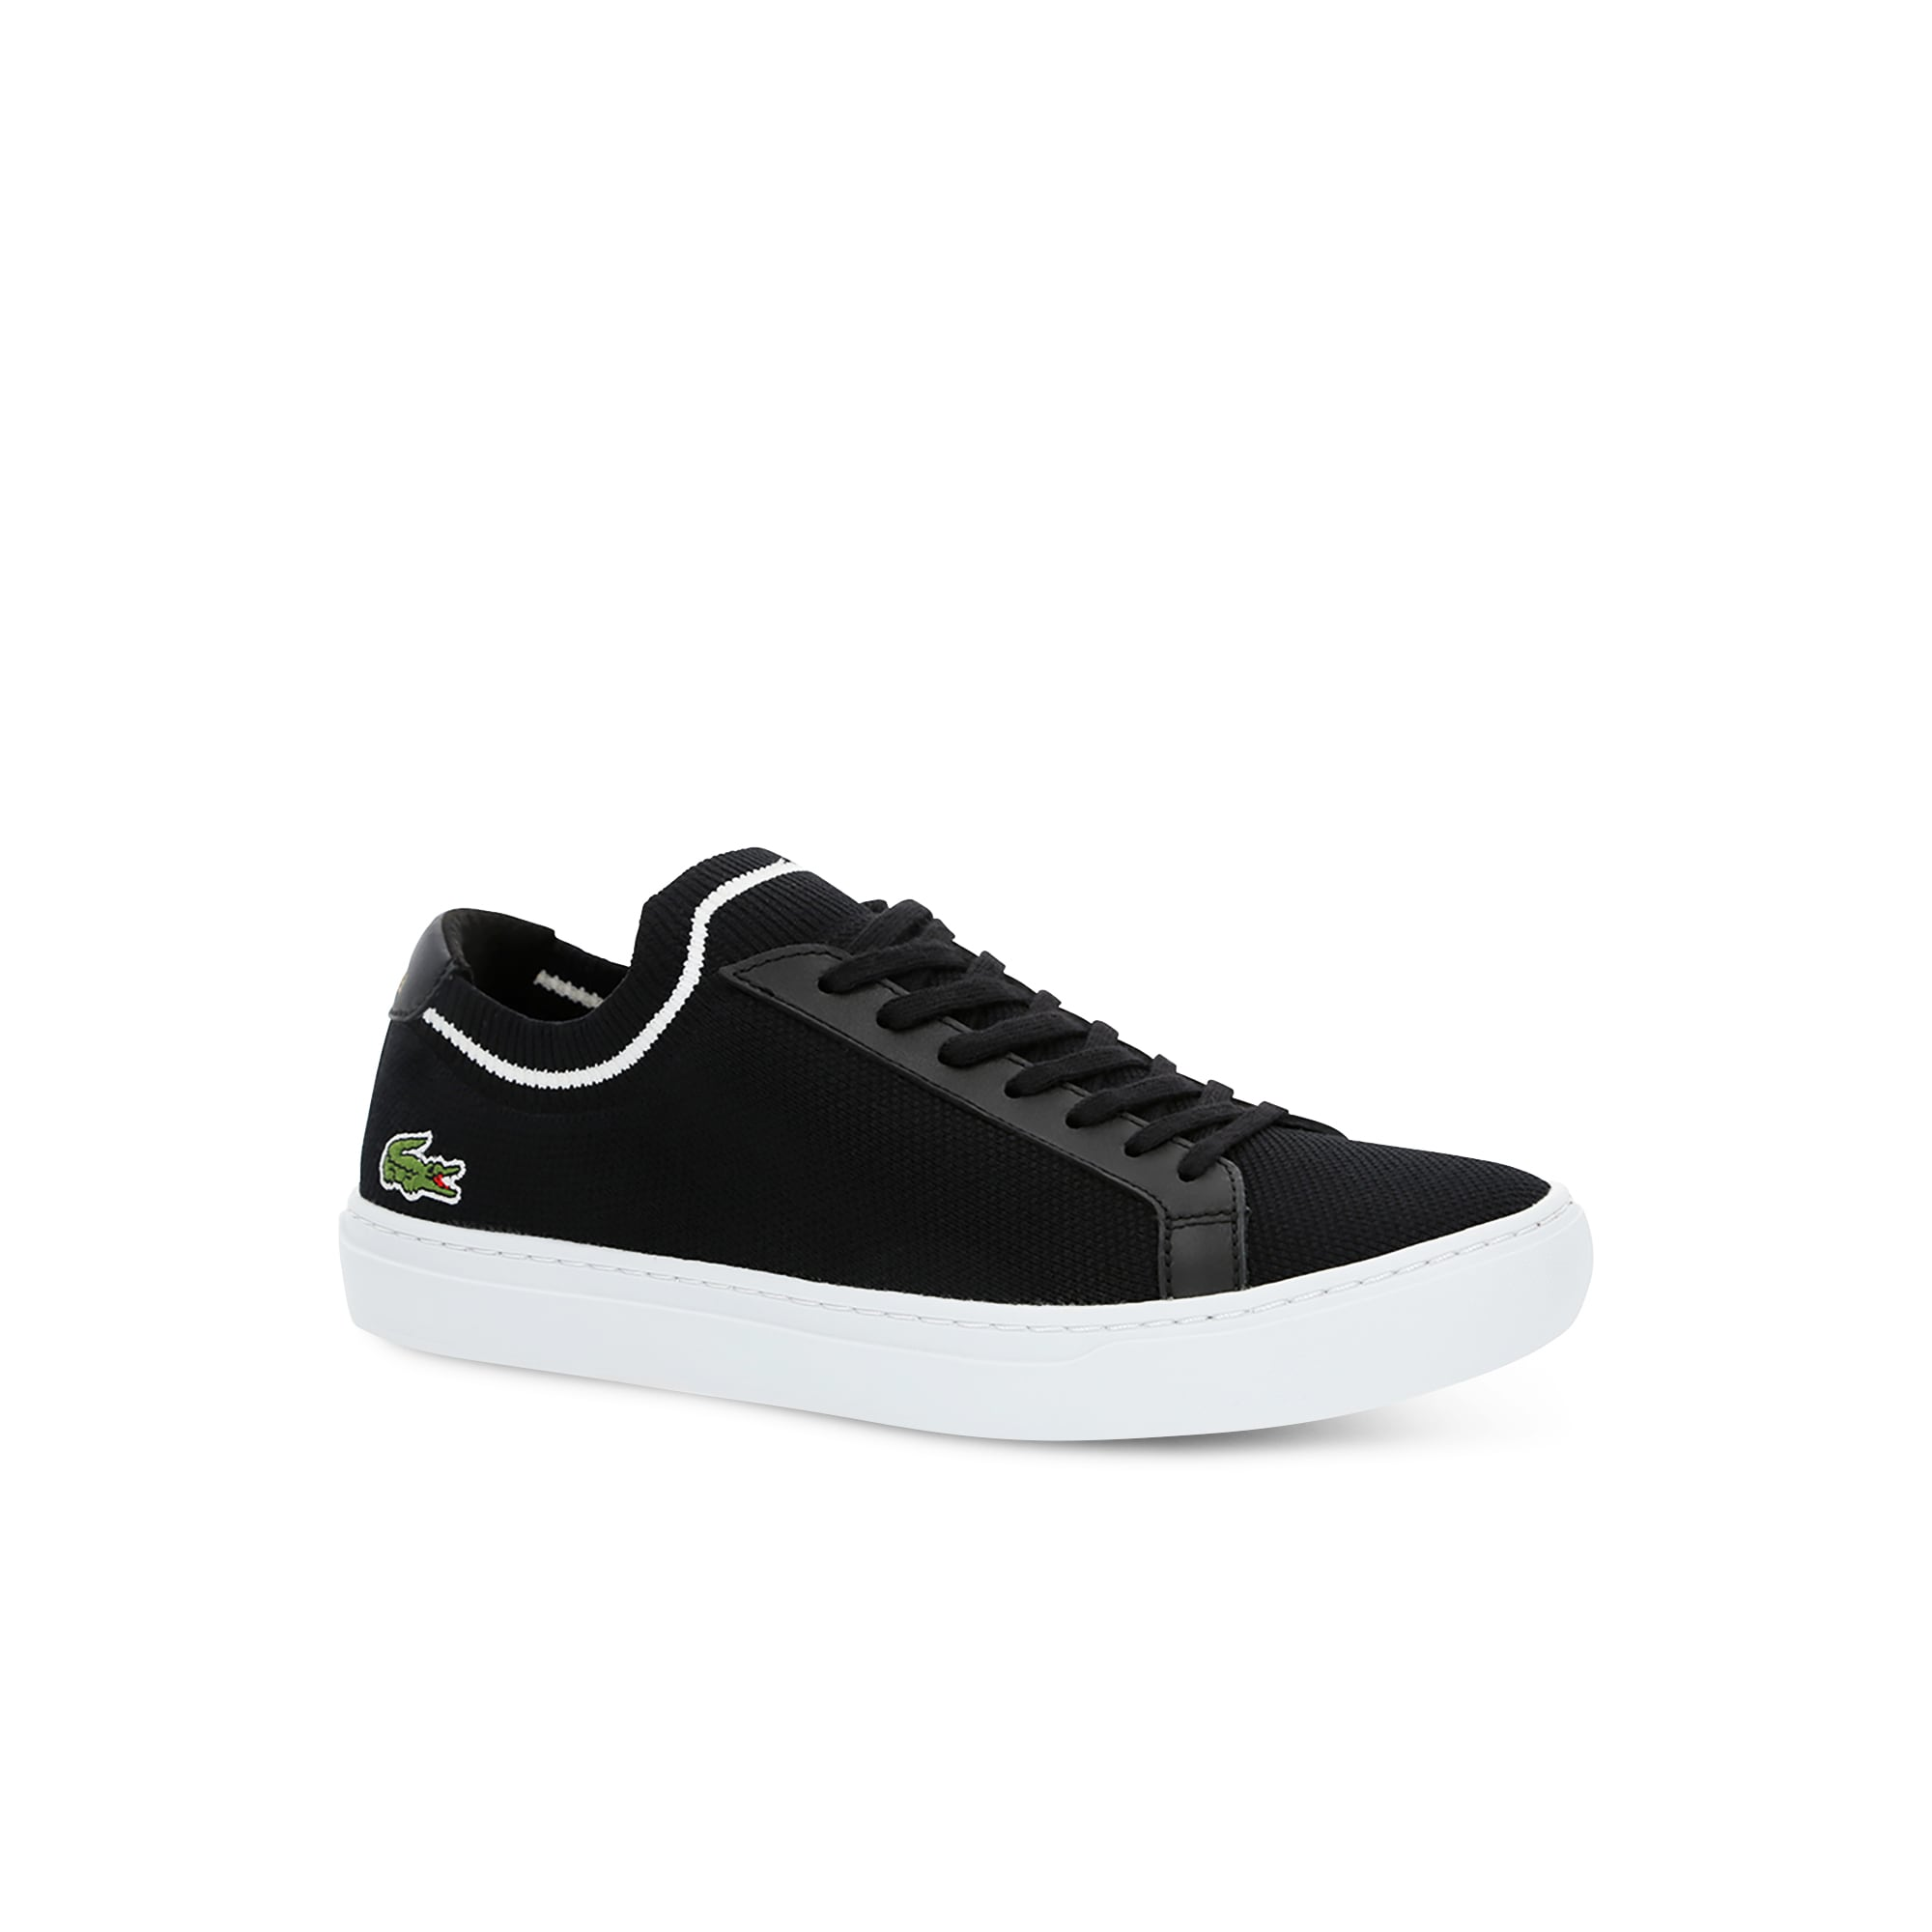 1ccee533eb7 Lacoste shoes for men  Sneakers